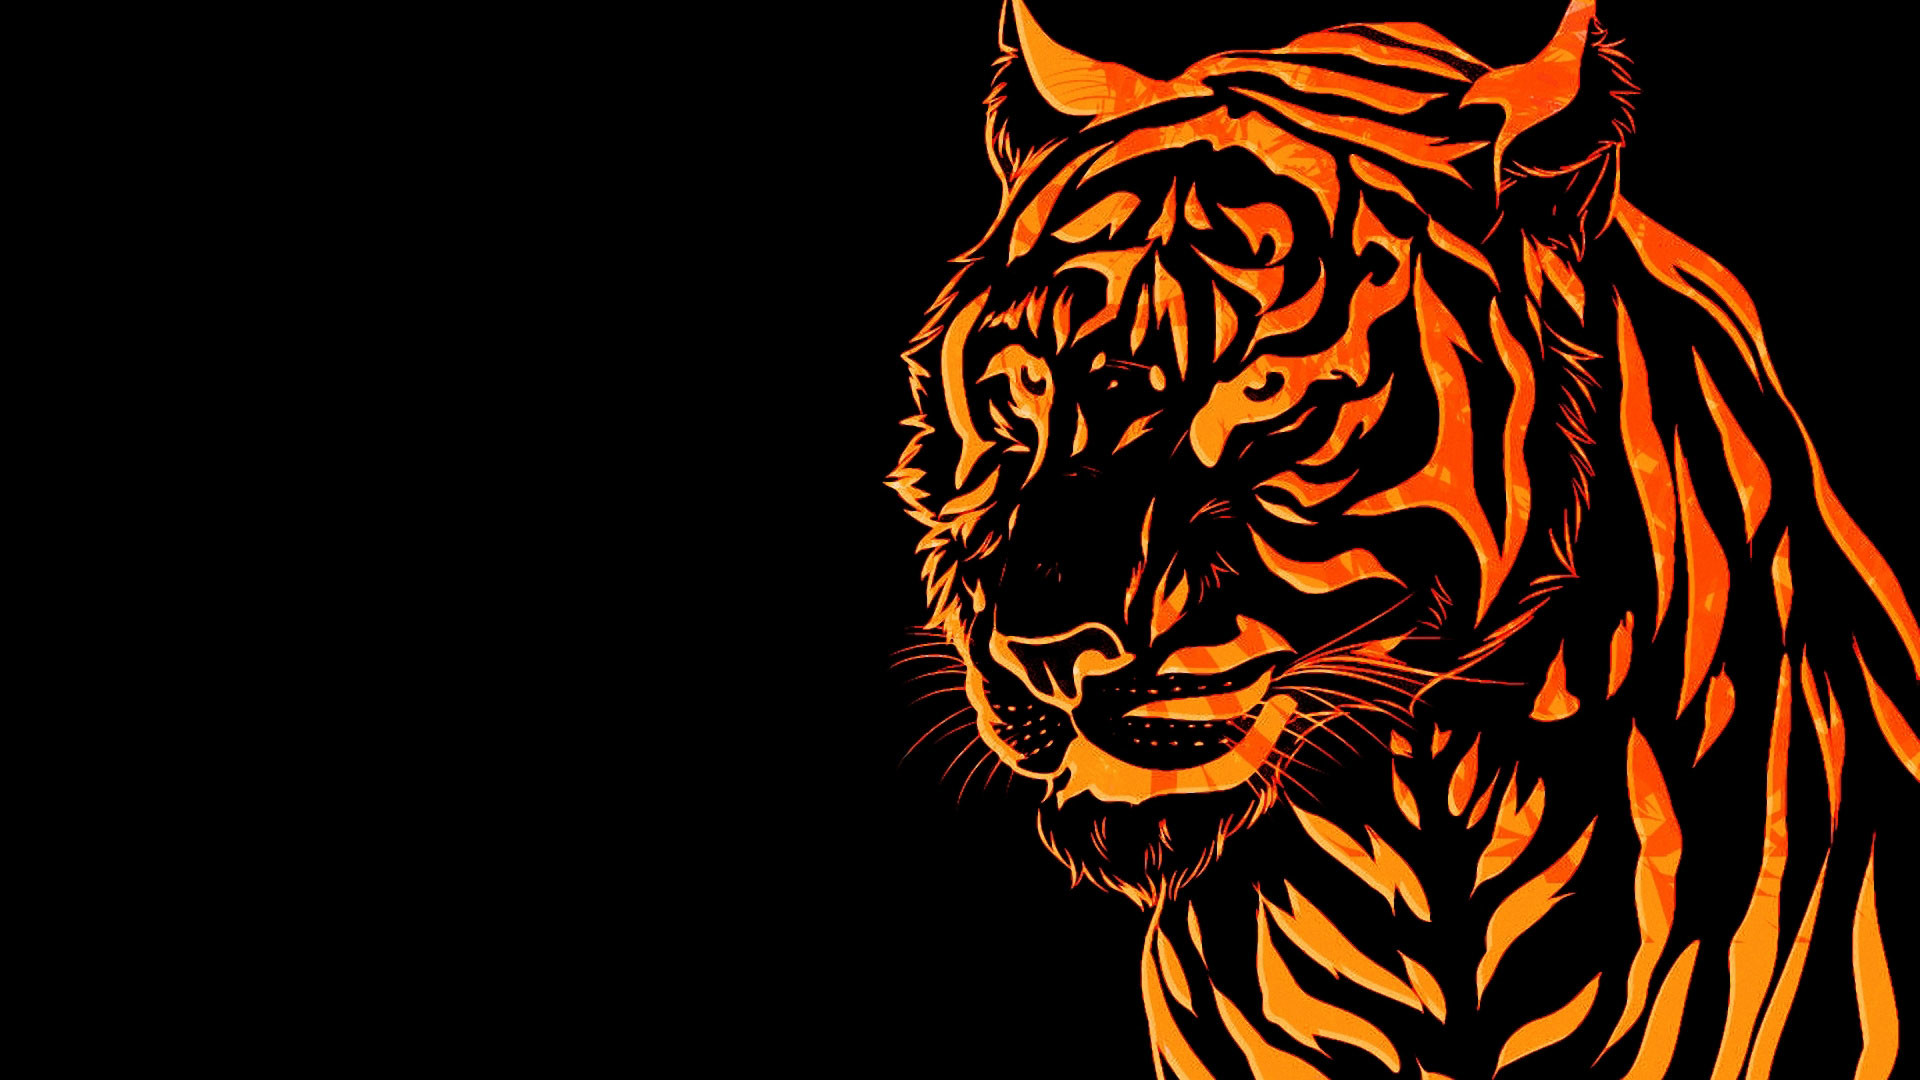 neon tiger wallpaper (65+ images)